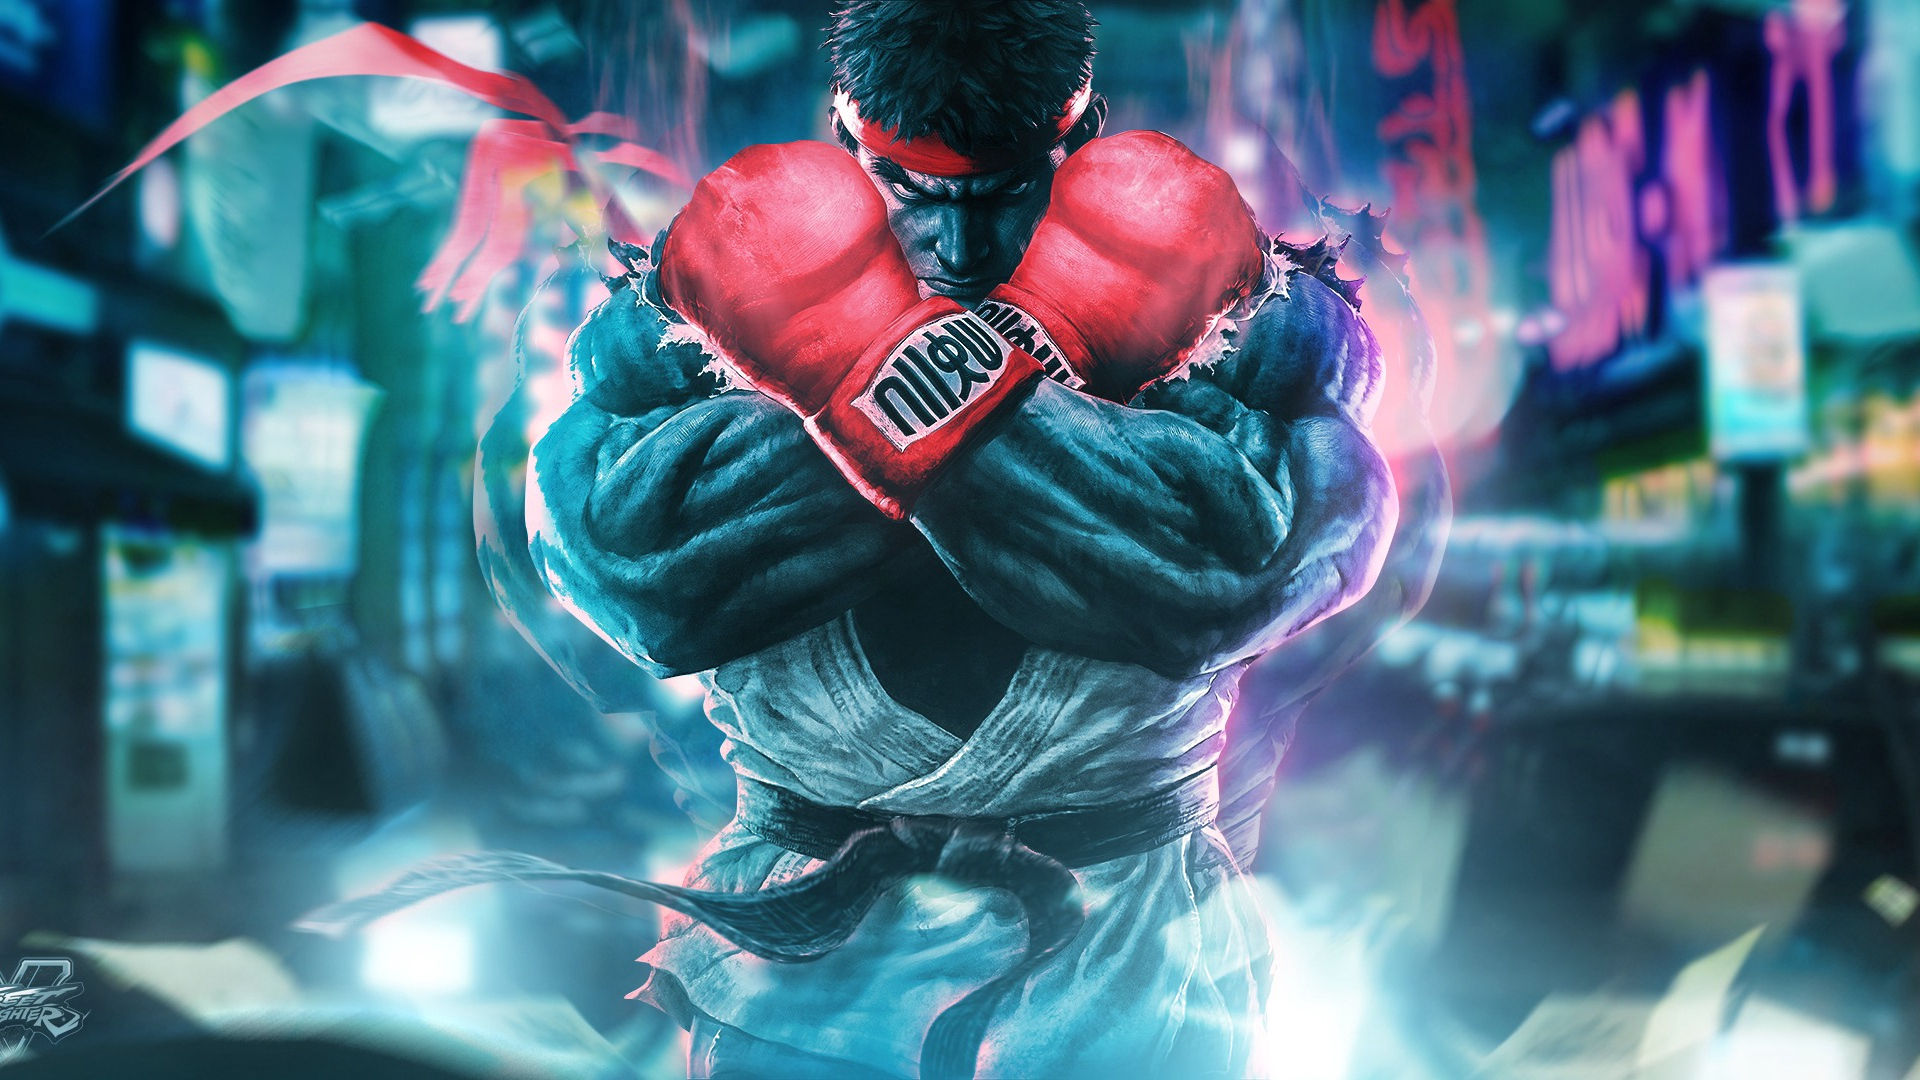 Street Fighter 5 Wallpaper 1920x1080 Posted By Sarah Johnson